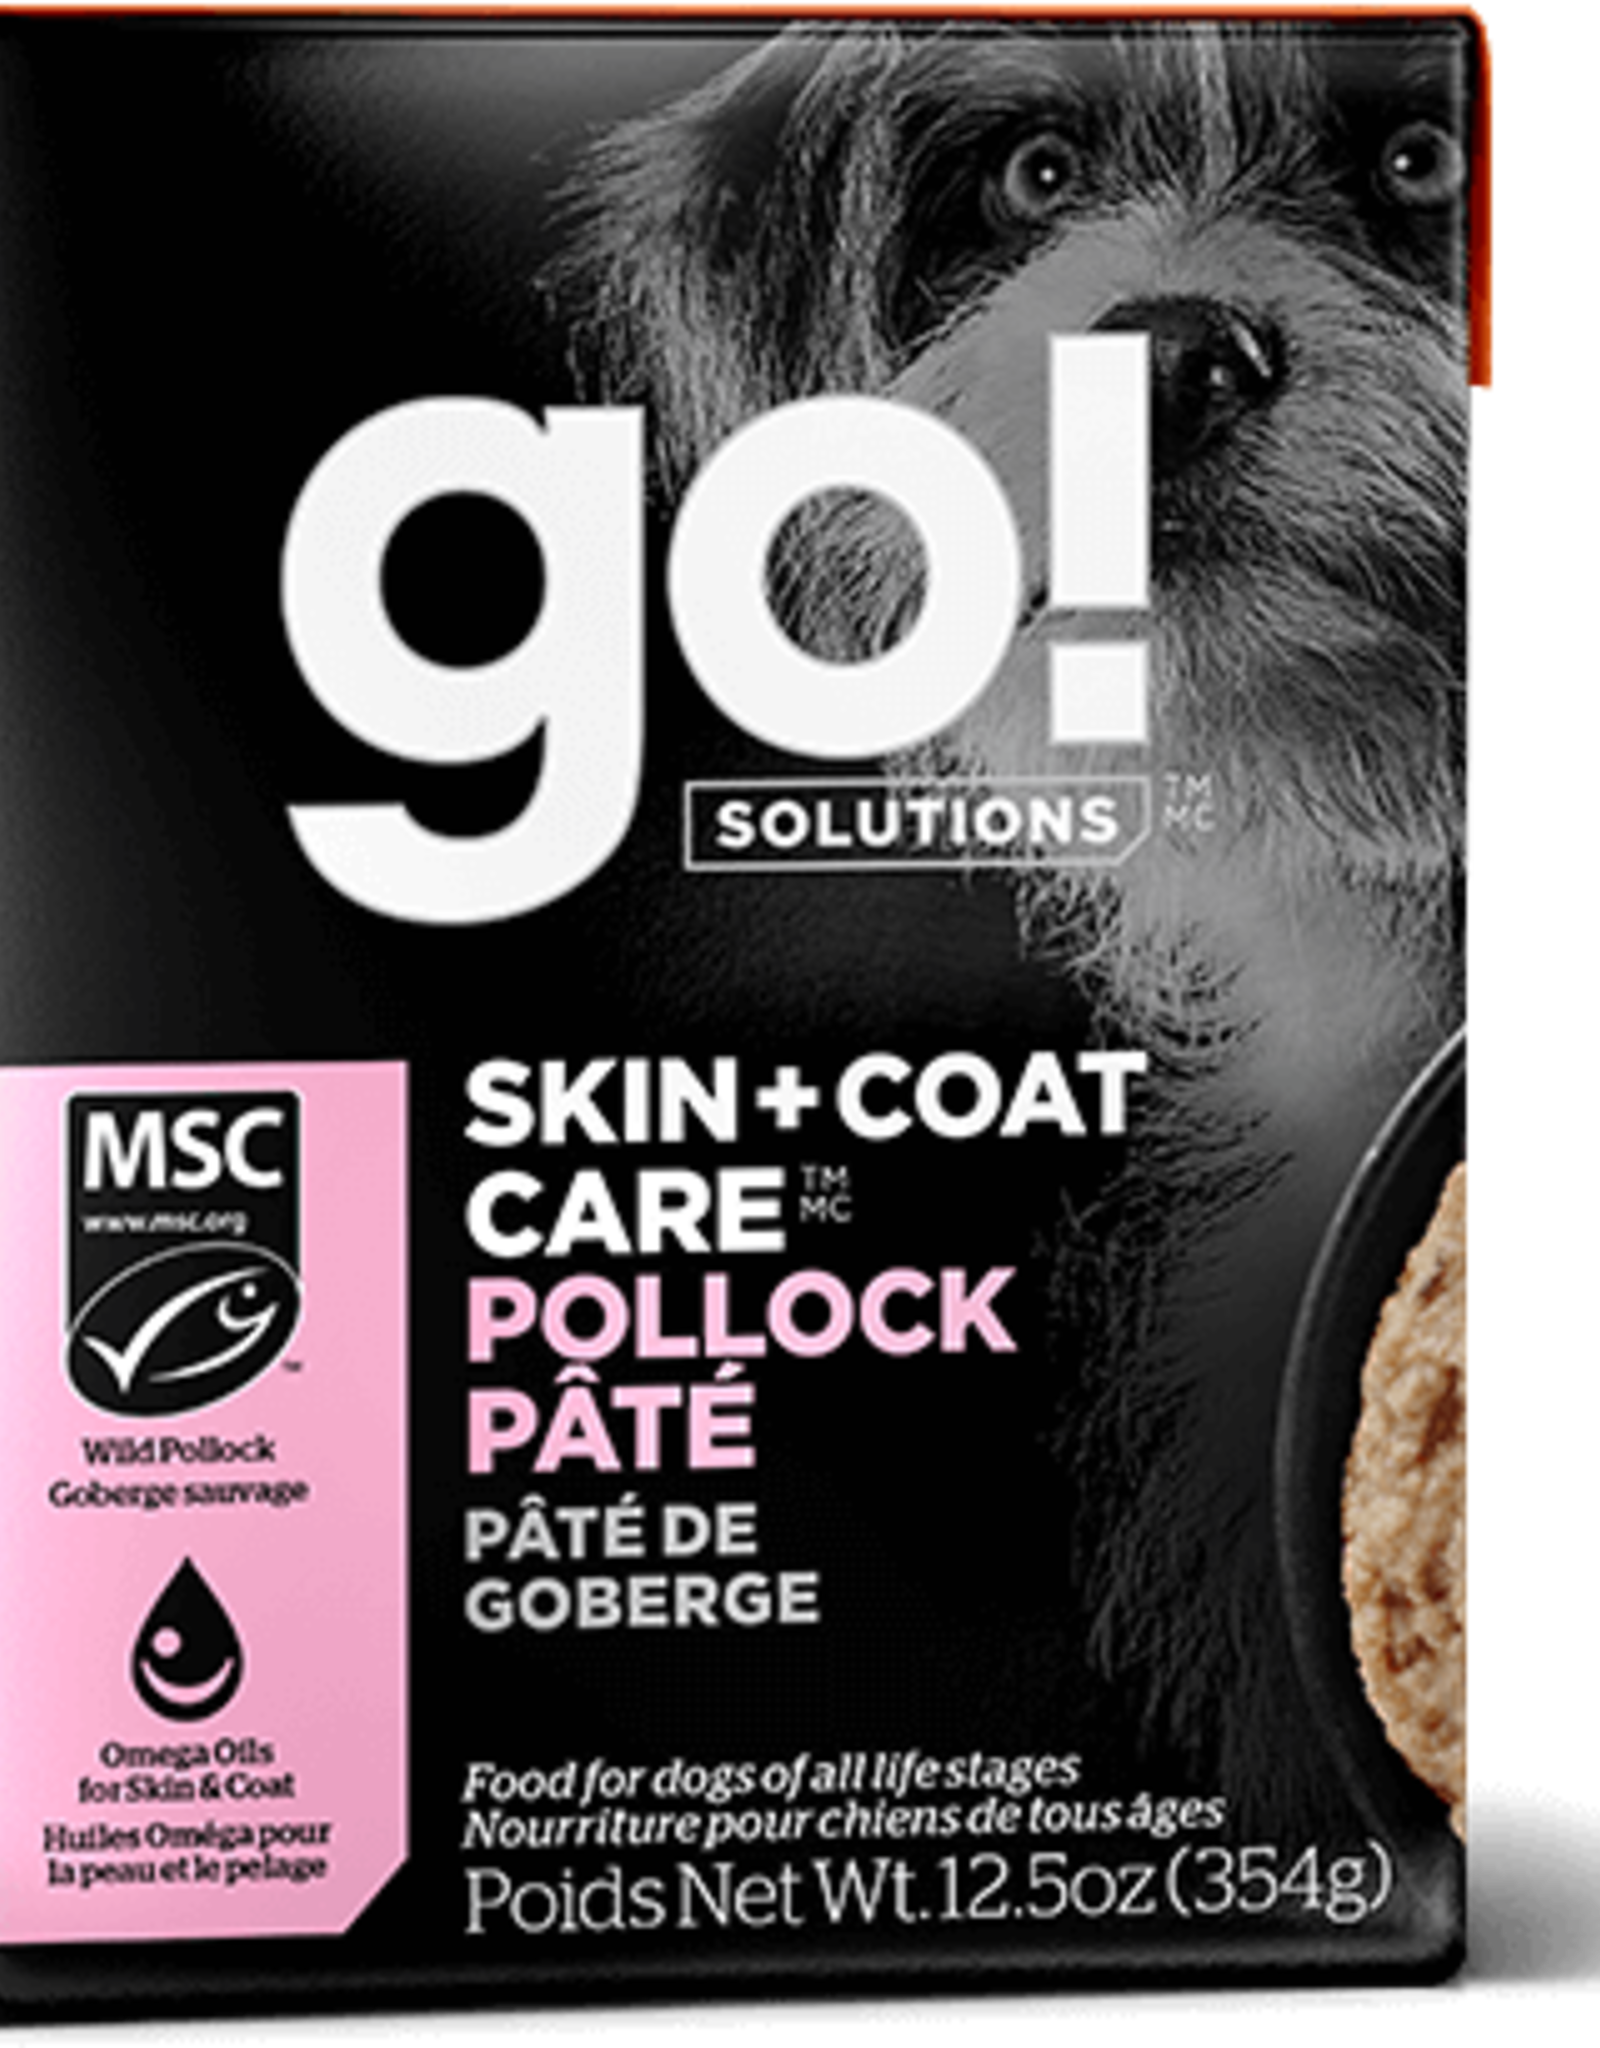 Petcurean GO Skin & Coat Pollock Pate Dog 12.5oz